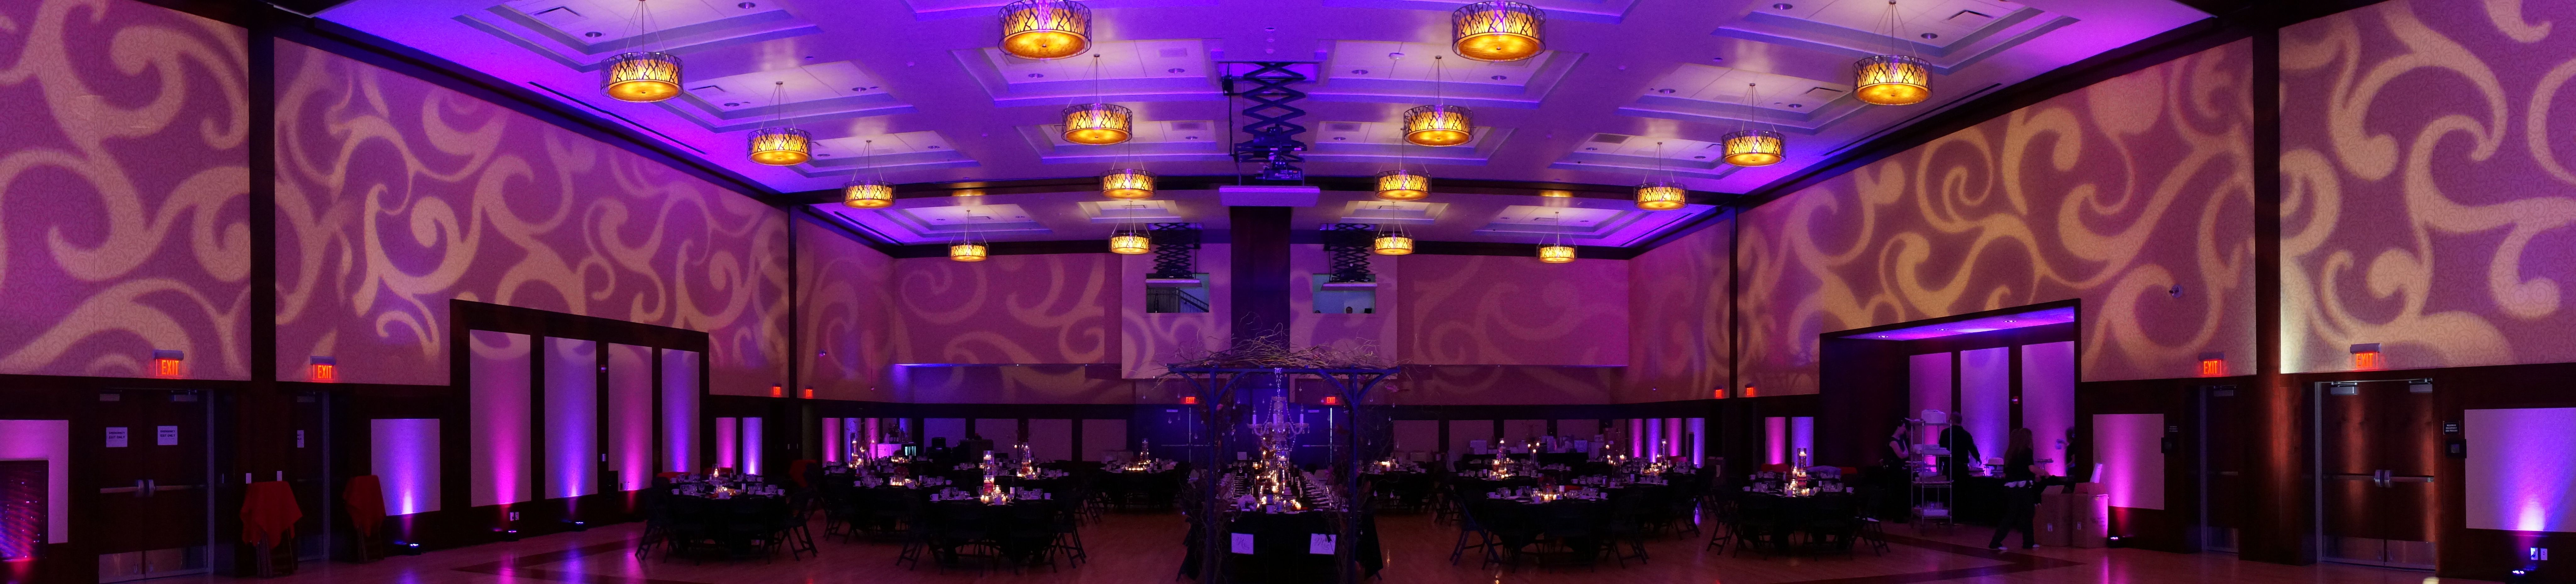 Uplighting By Midwest Entertainment Www Mymidwestdj Com University Of Wisconsin Eau Claire Event Lighting Wedding Specials Entertaining